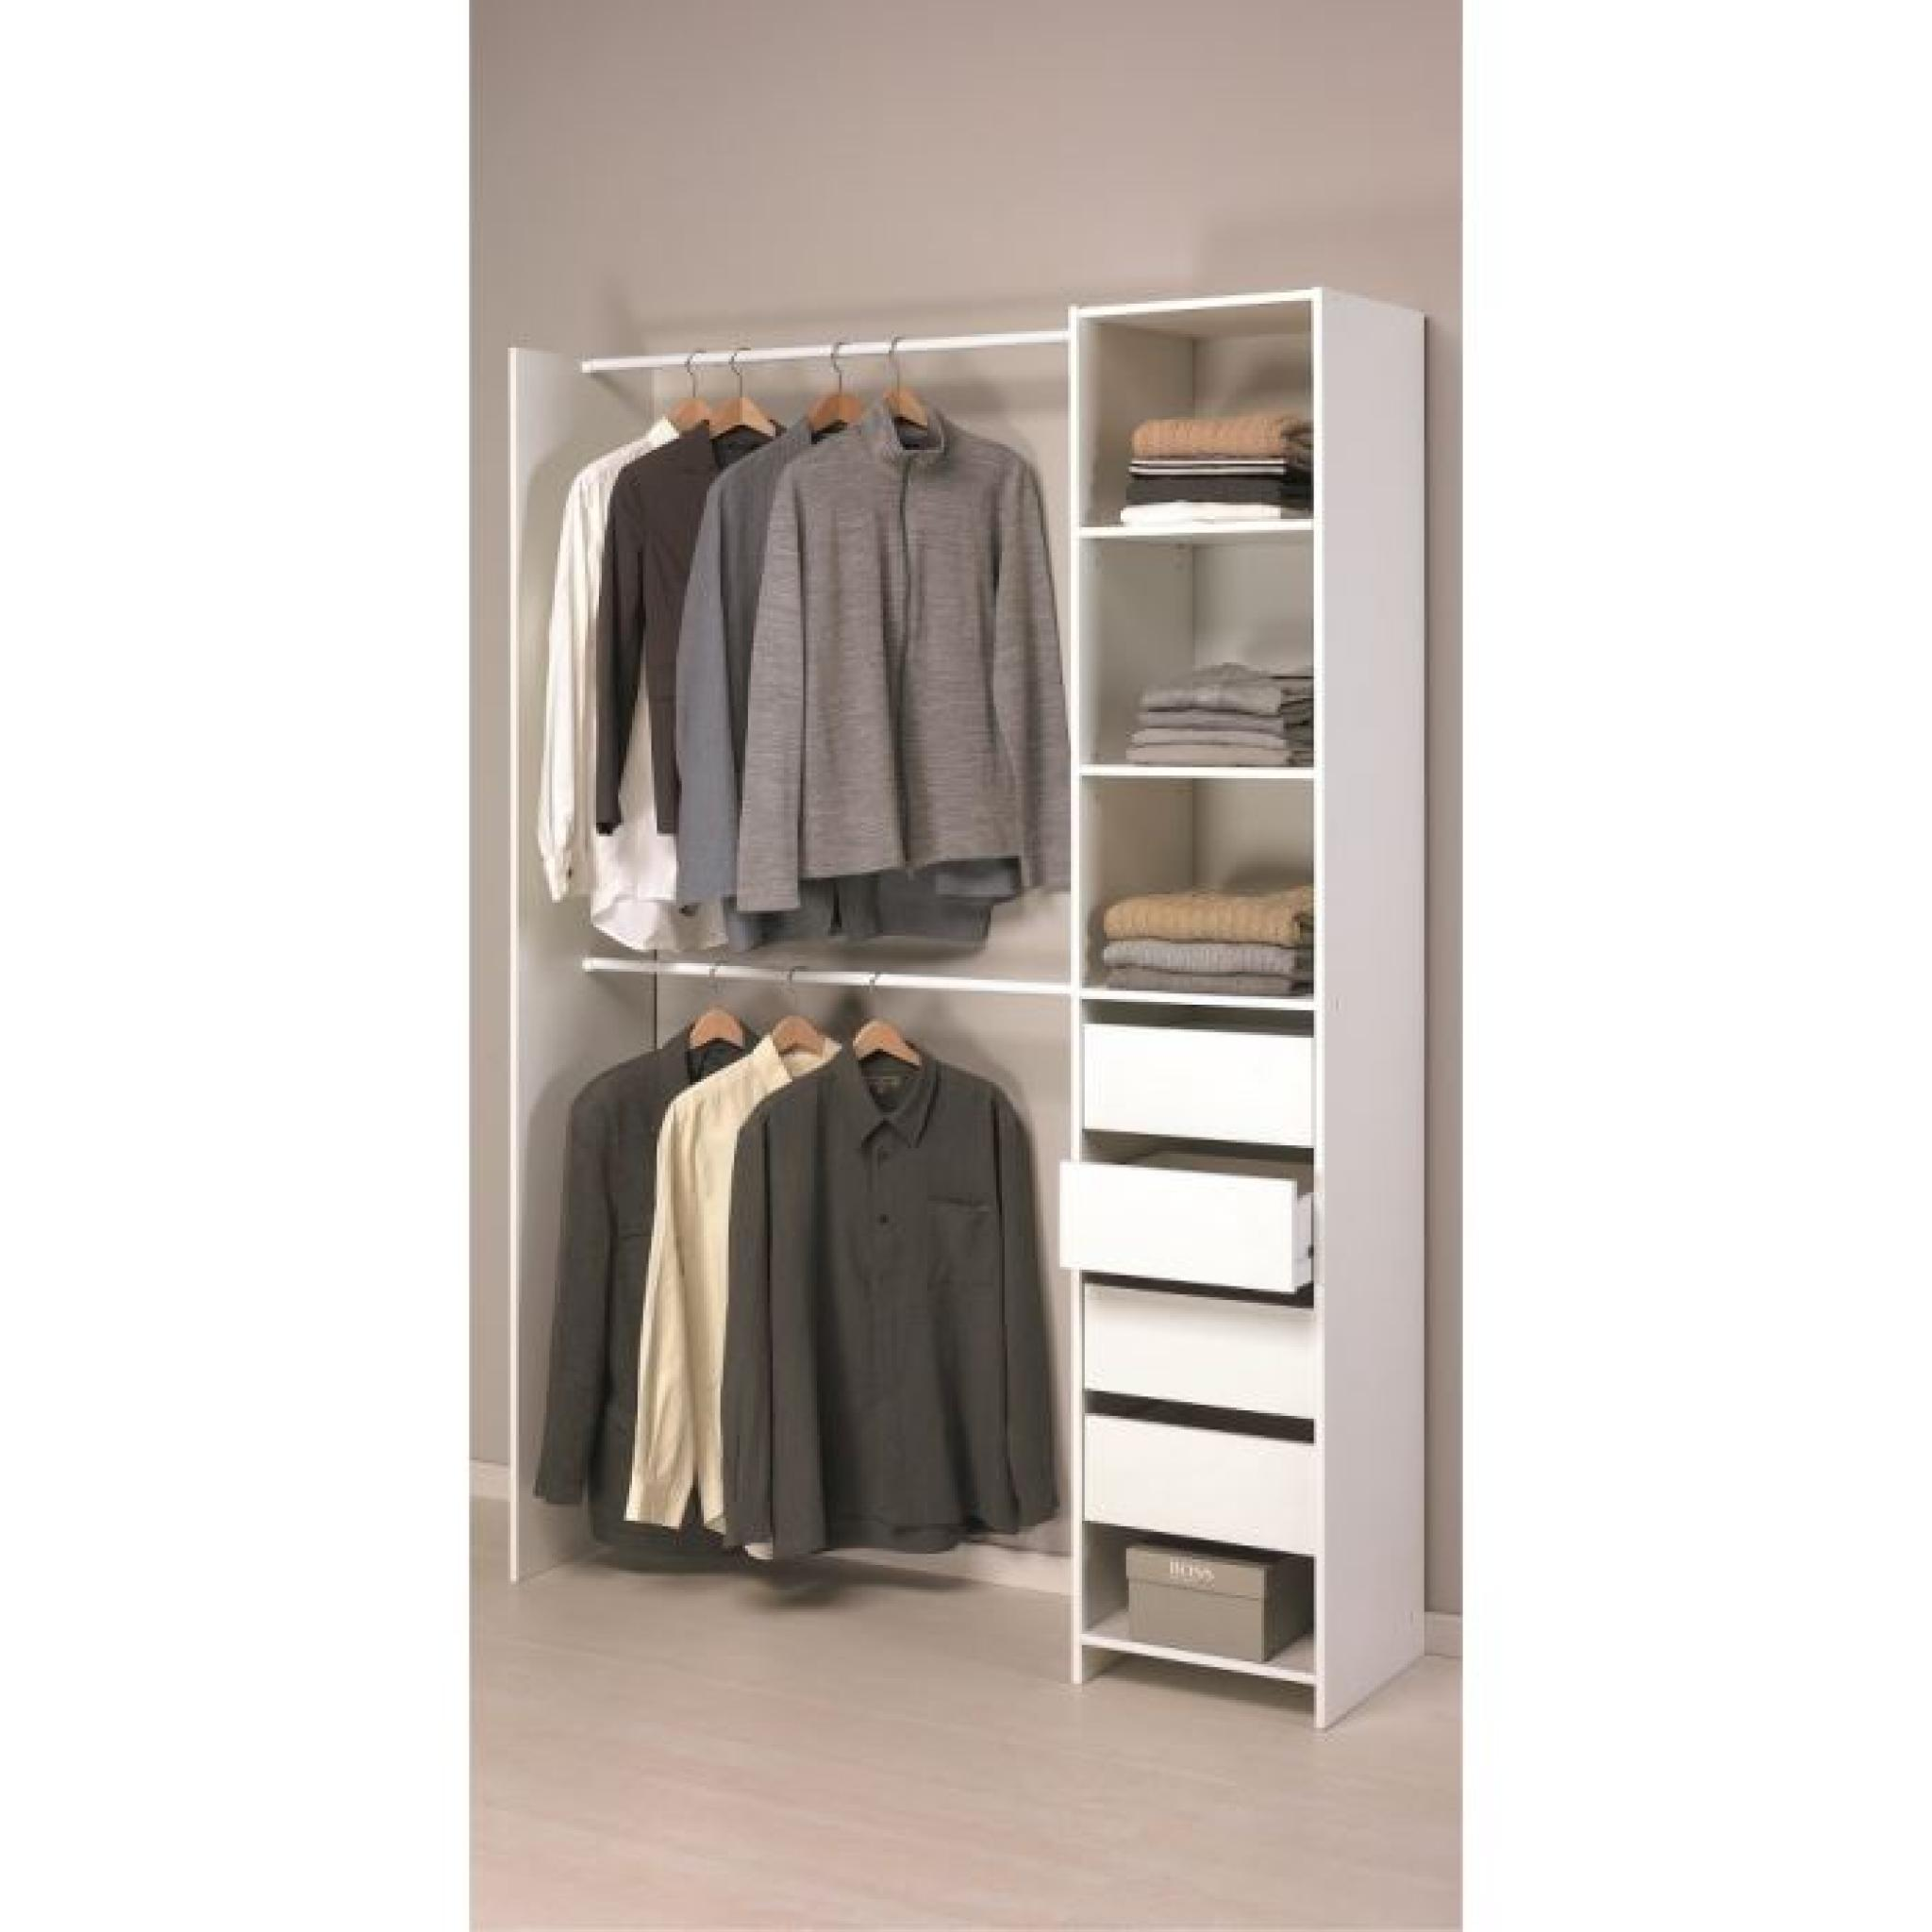 skirt kit placard 203cm blanc achat vente dressing pas cher couleur et. Black Bedroom Furniture Sets. Home Design Ideas